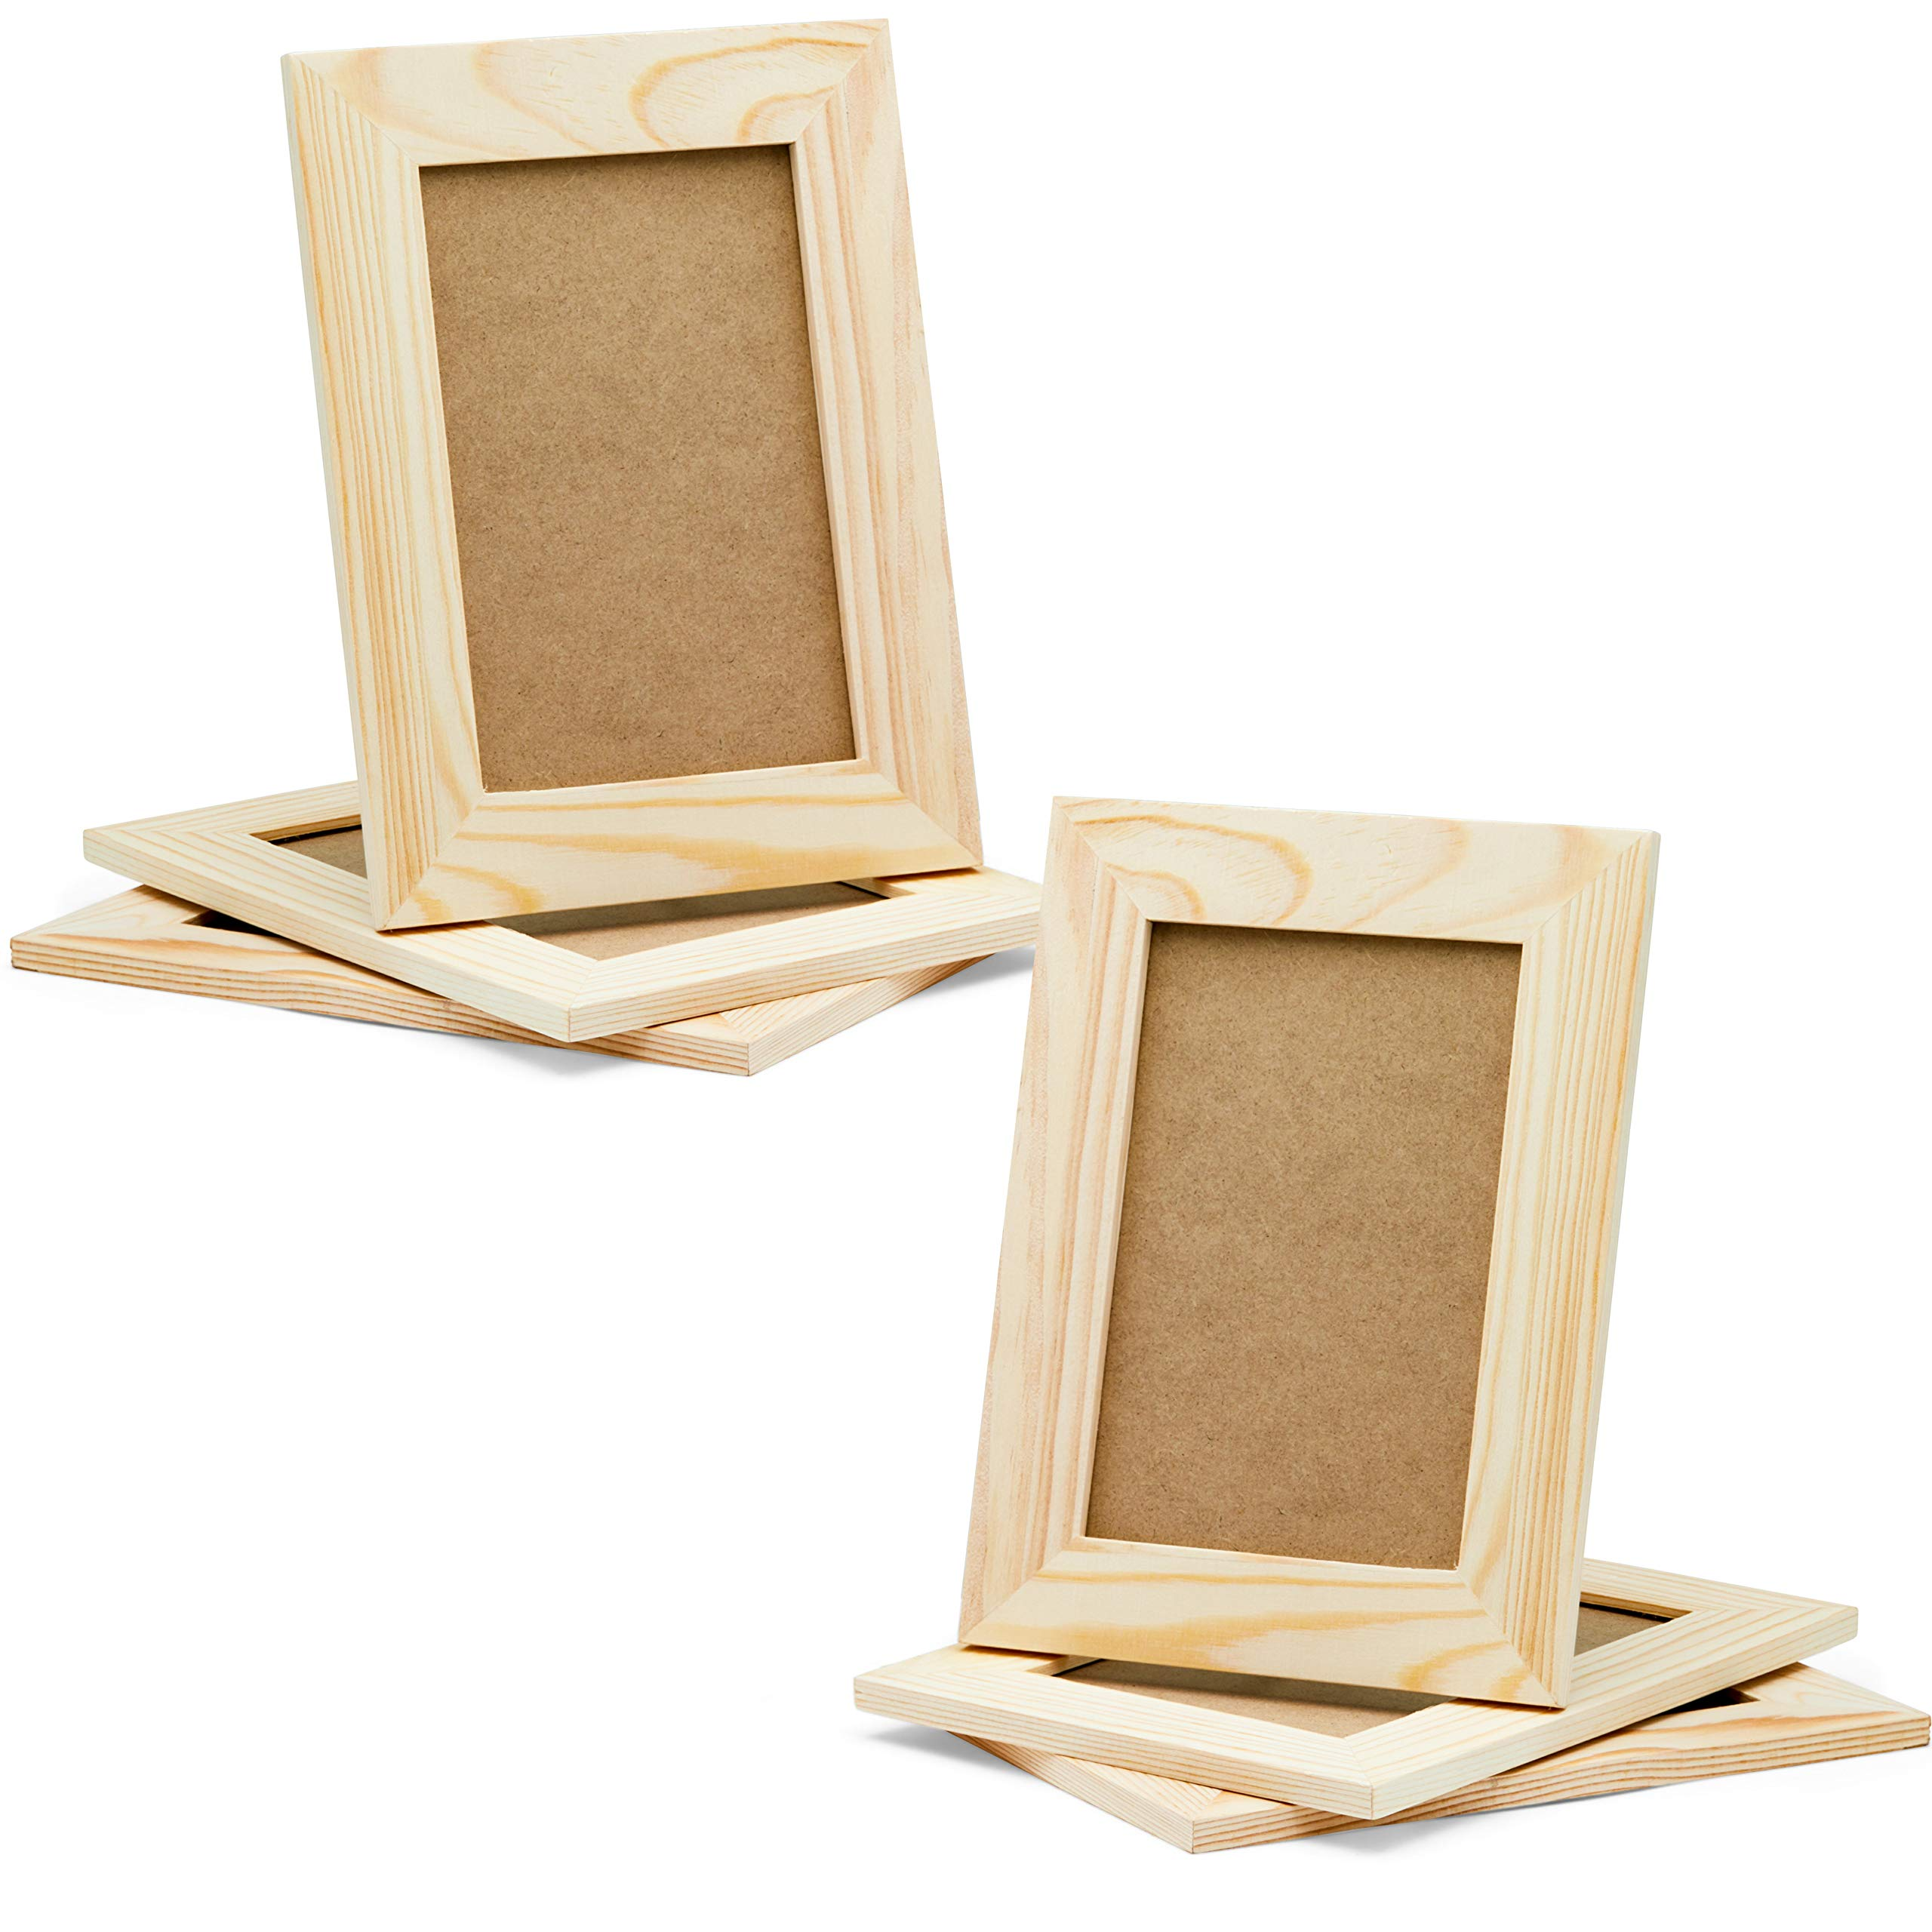 DIY Picture Frames, 4x6 Craft Frames Set, Unfinished Solid Pine Wood DIY Photo Frames, For Arts and Crafts DIY Painting Projects, Set of 6 (6x8 Frame Size Holds 6x4 Pictures) For Adults and Kids Craft